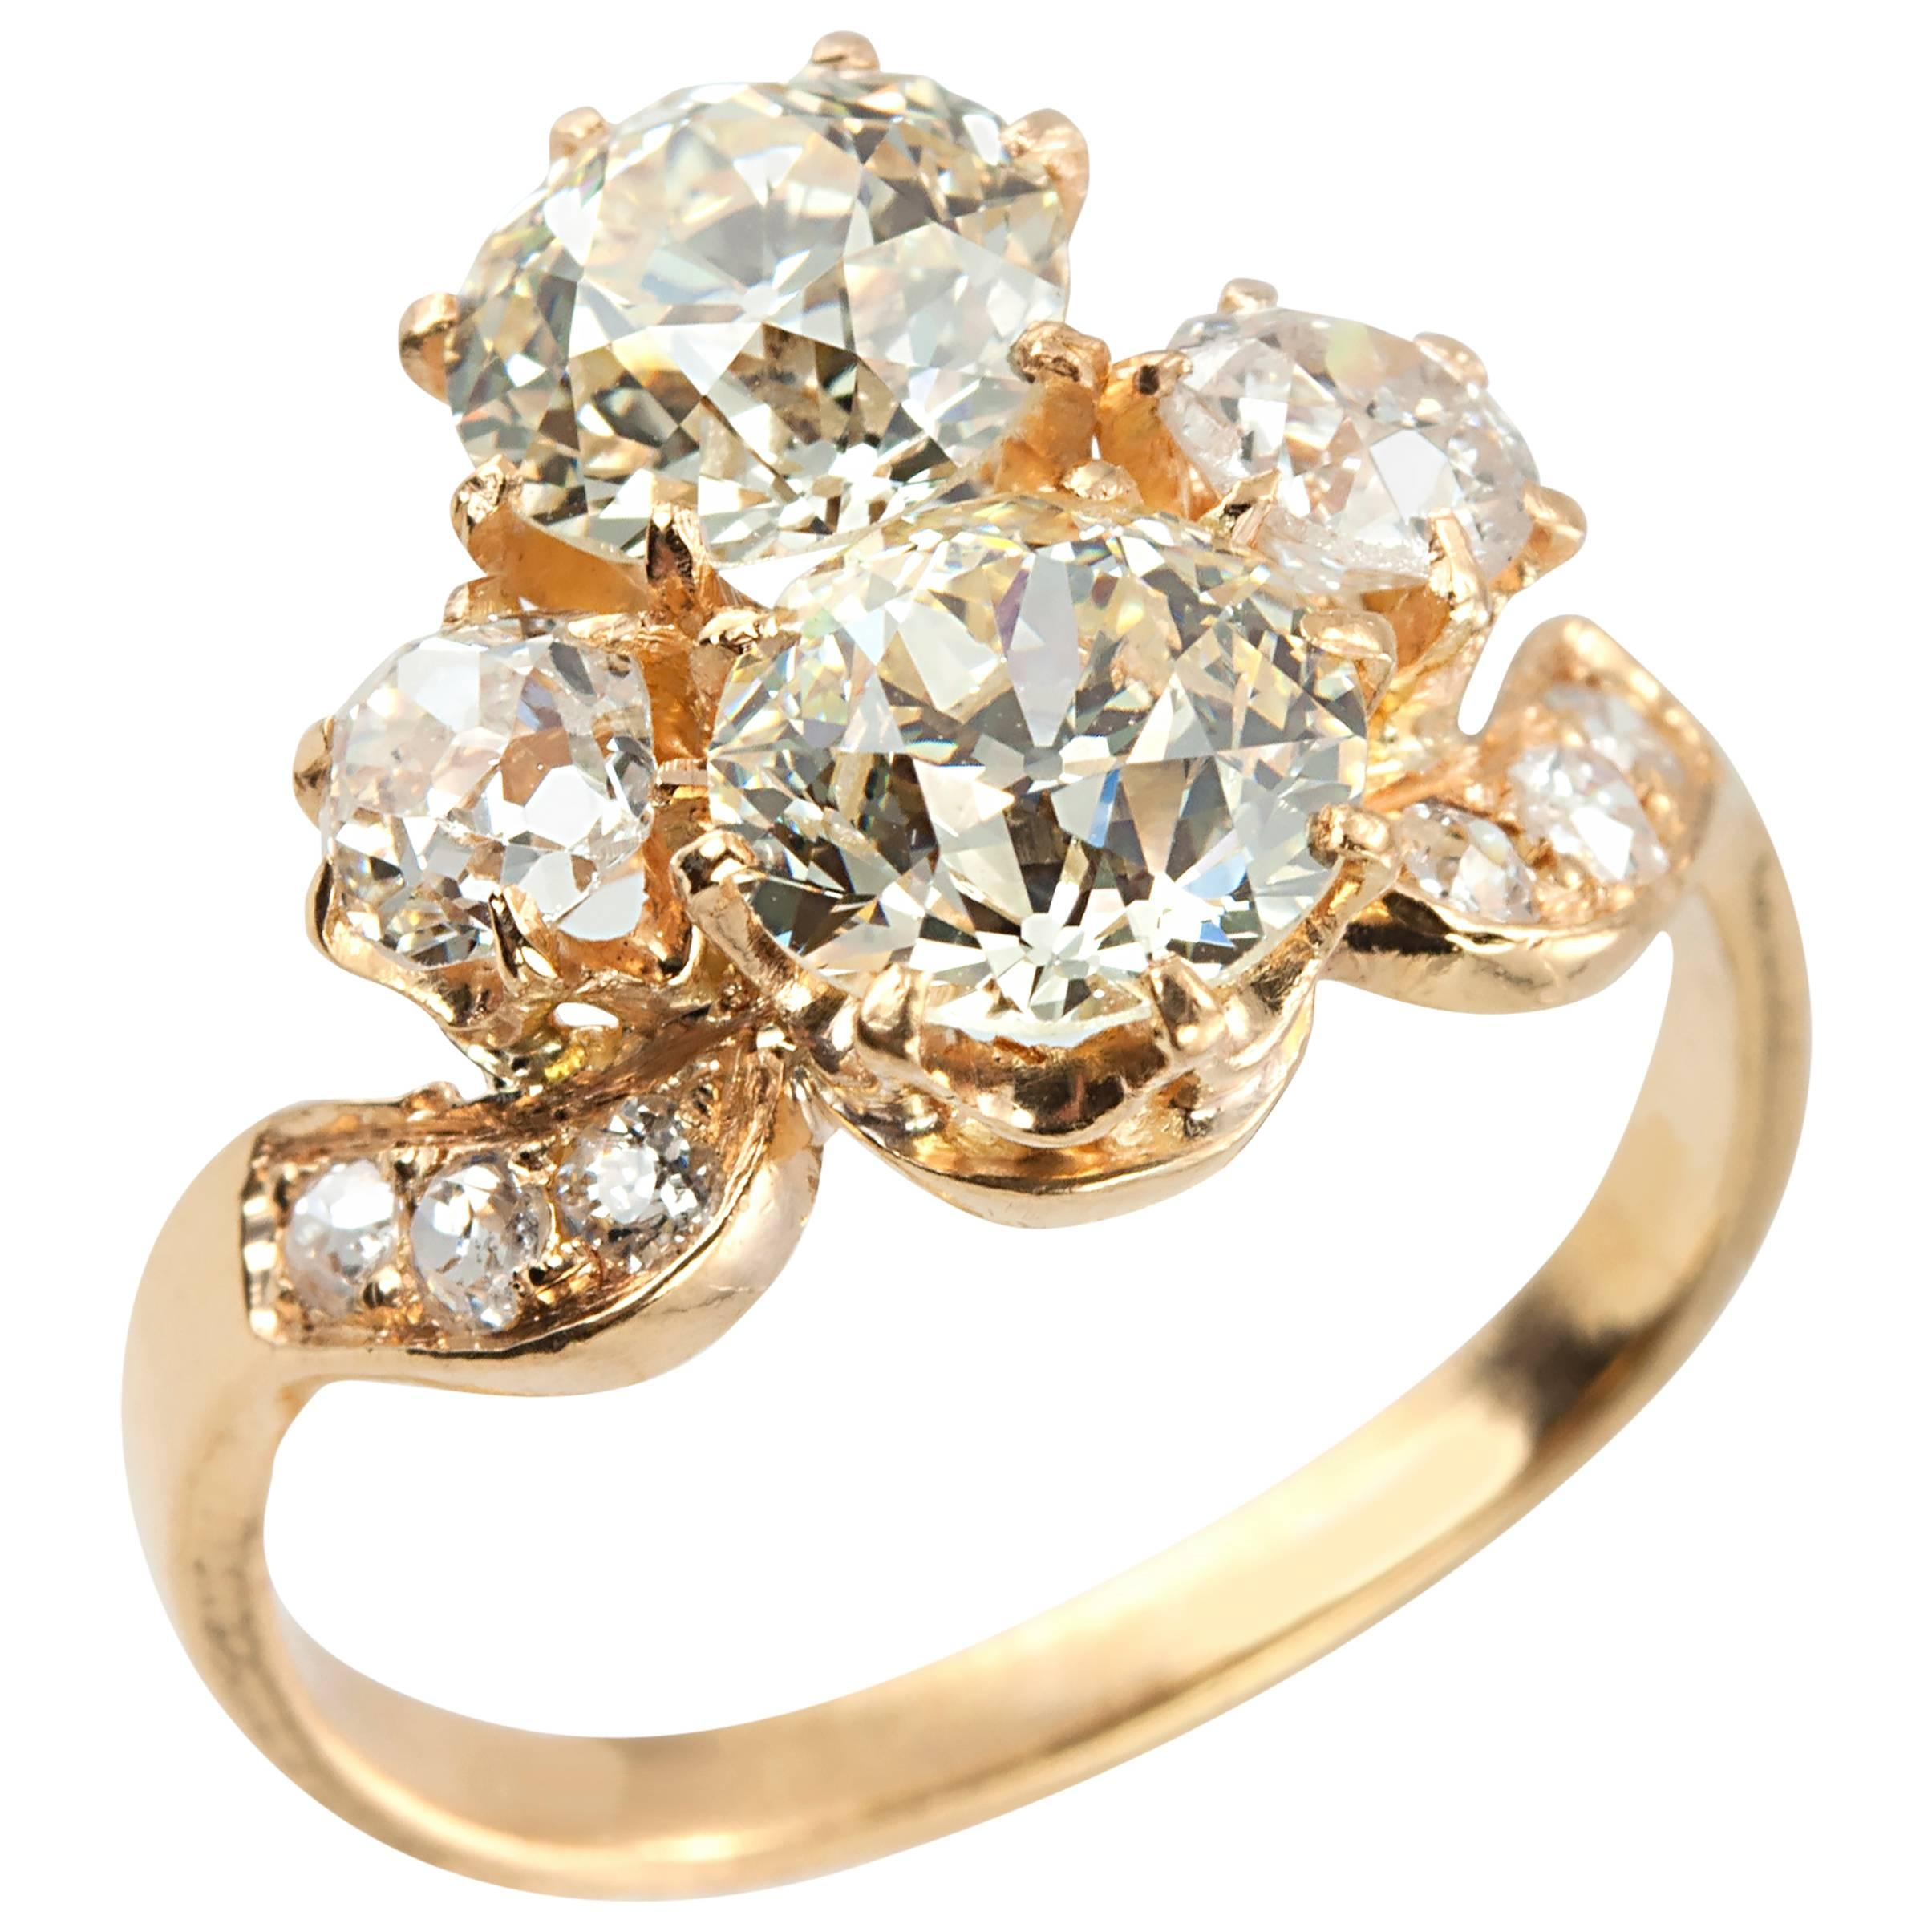 vladislavna n wedding fairy gold rings platinum image